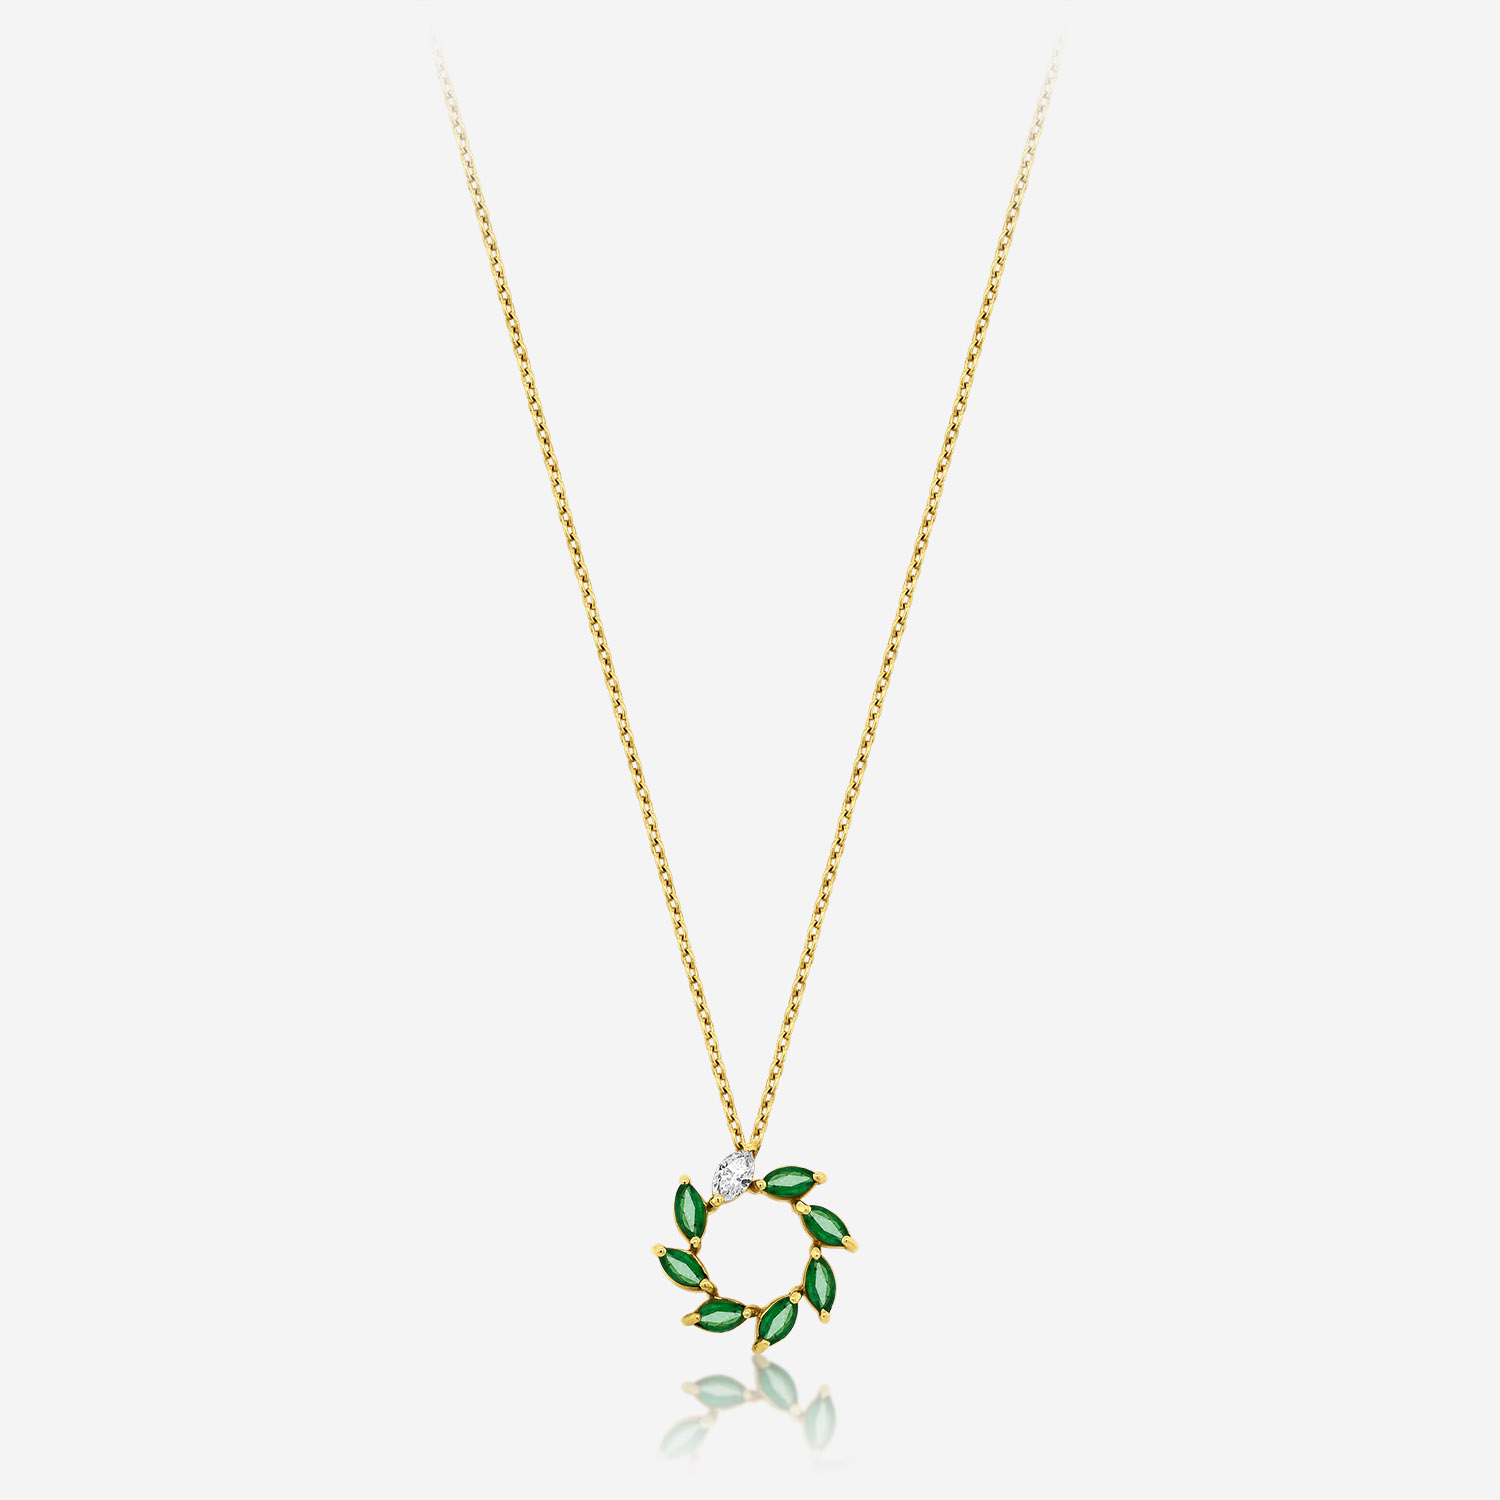 Diamond Necklaces Diamond necklace with emeralds Yellow Diamonds and emerald